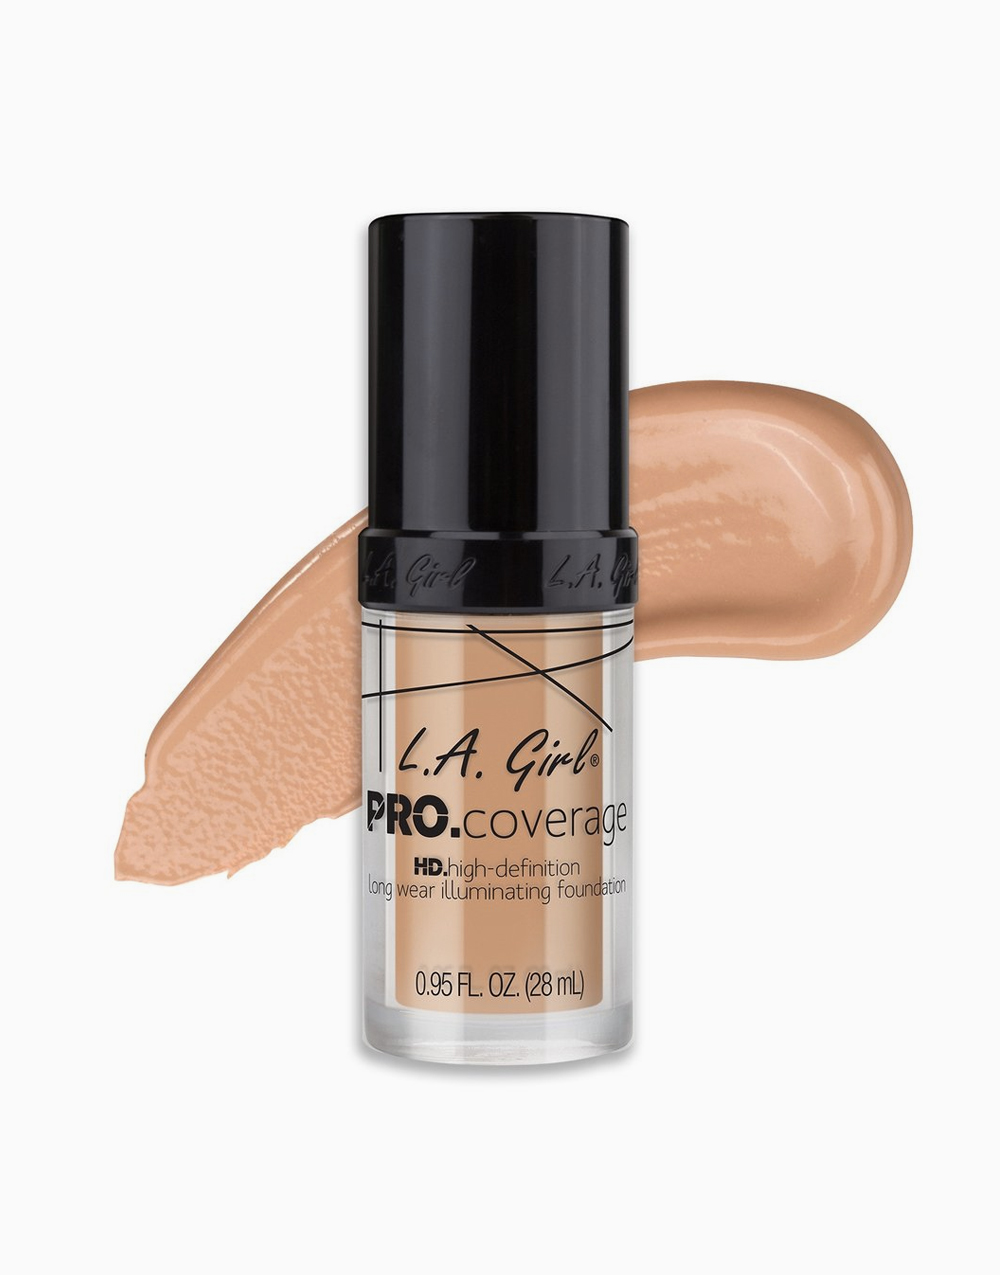 PRO Coverage Illuminating Foundation by L.A. Girl | Porcelain